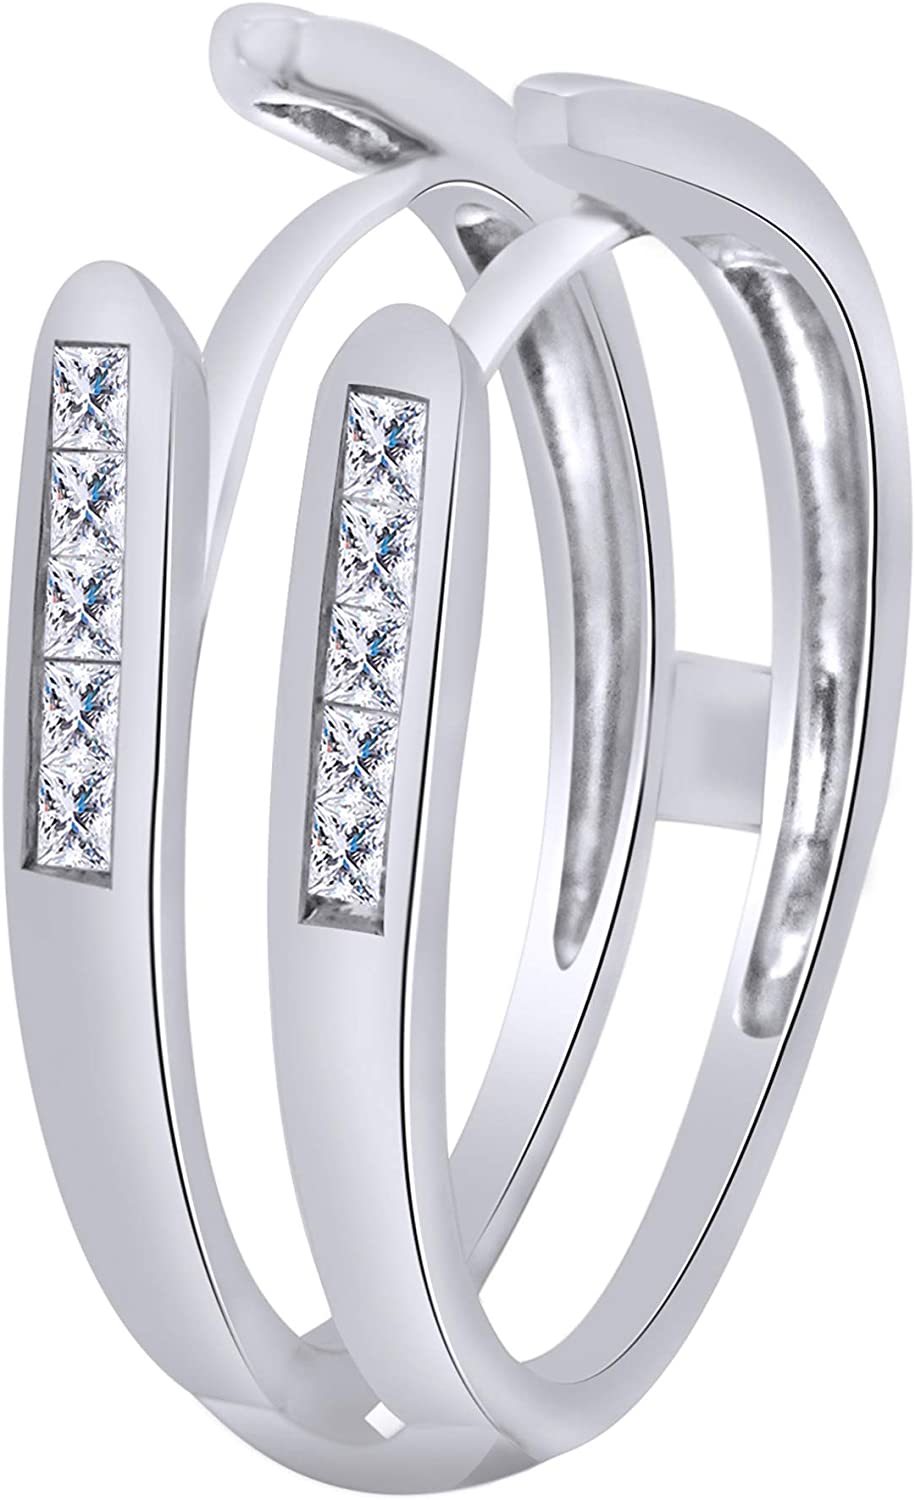 Princess Cut White Cubic Zirconia Enhancer Ring Guard For Women In 10k Solid Gold